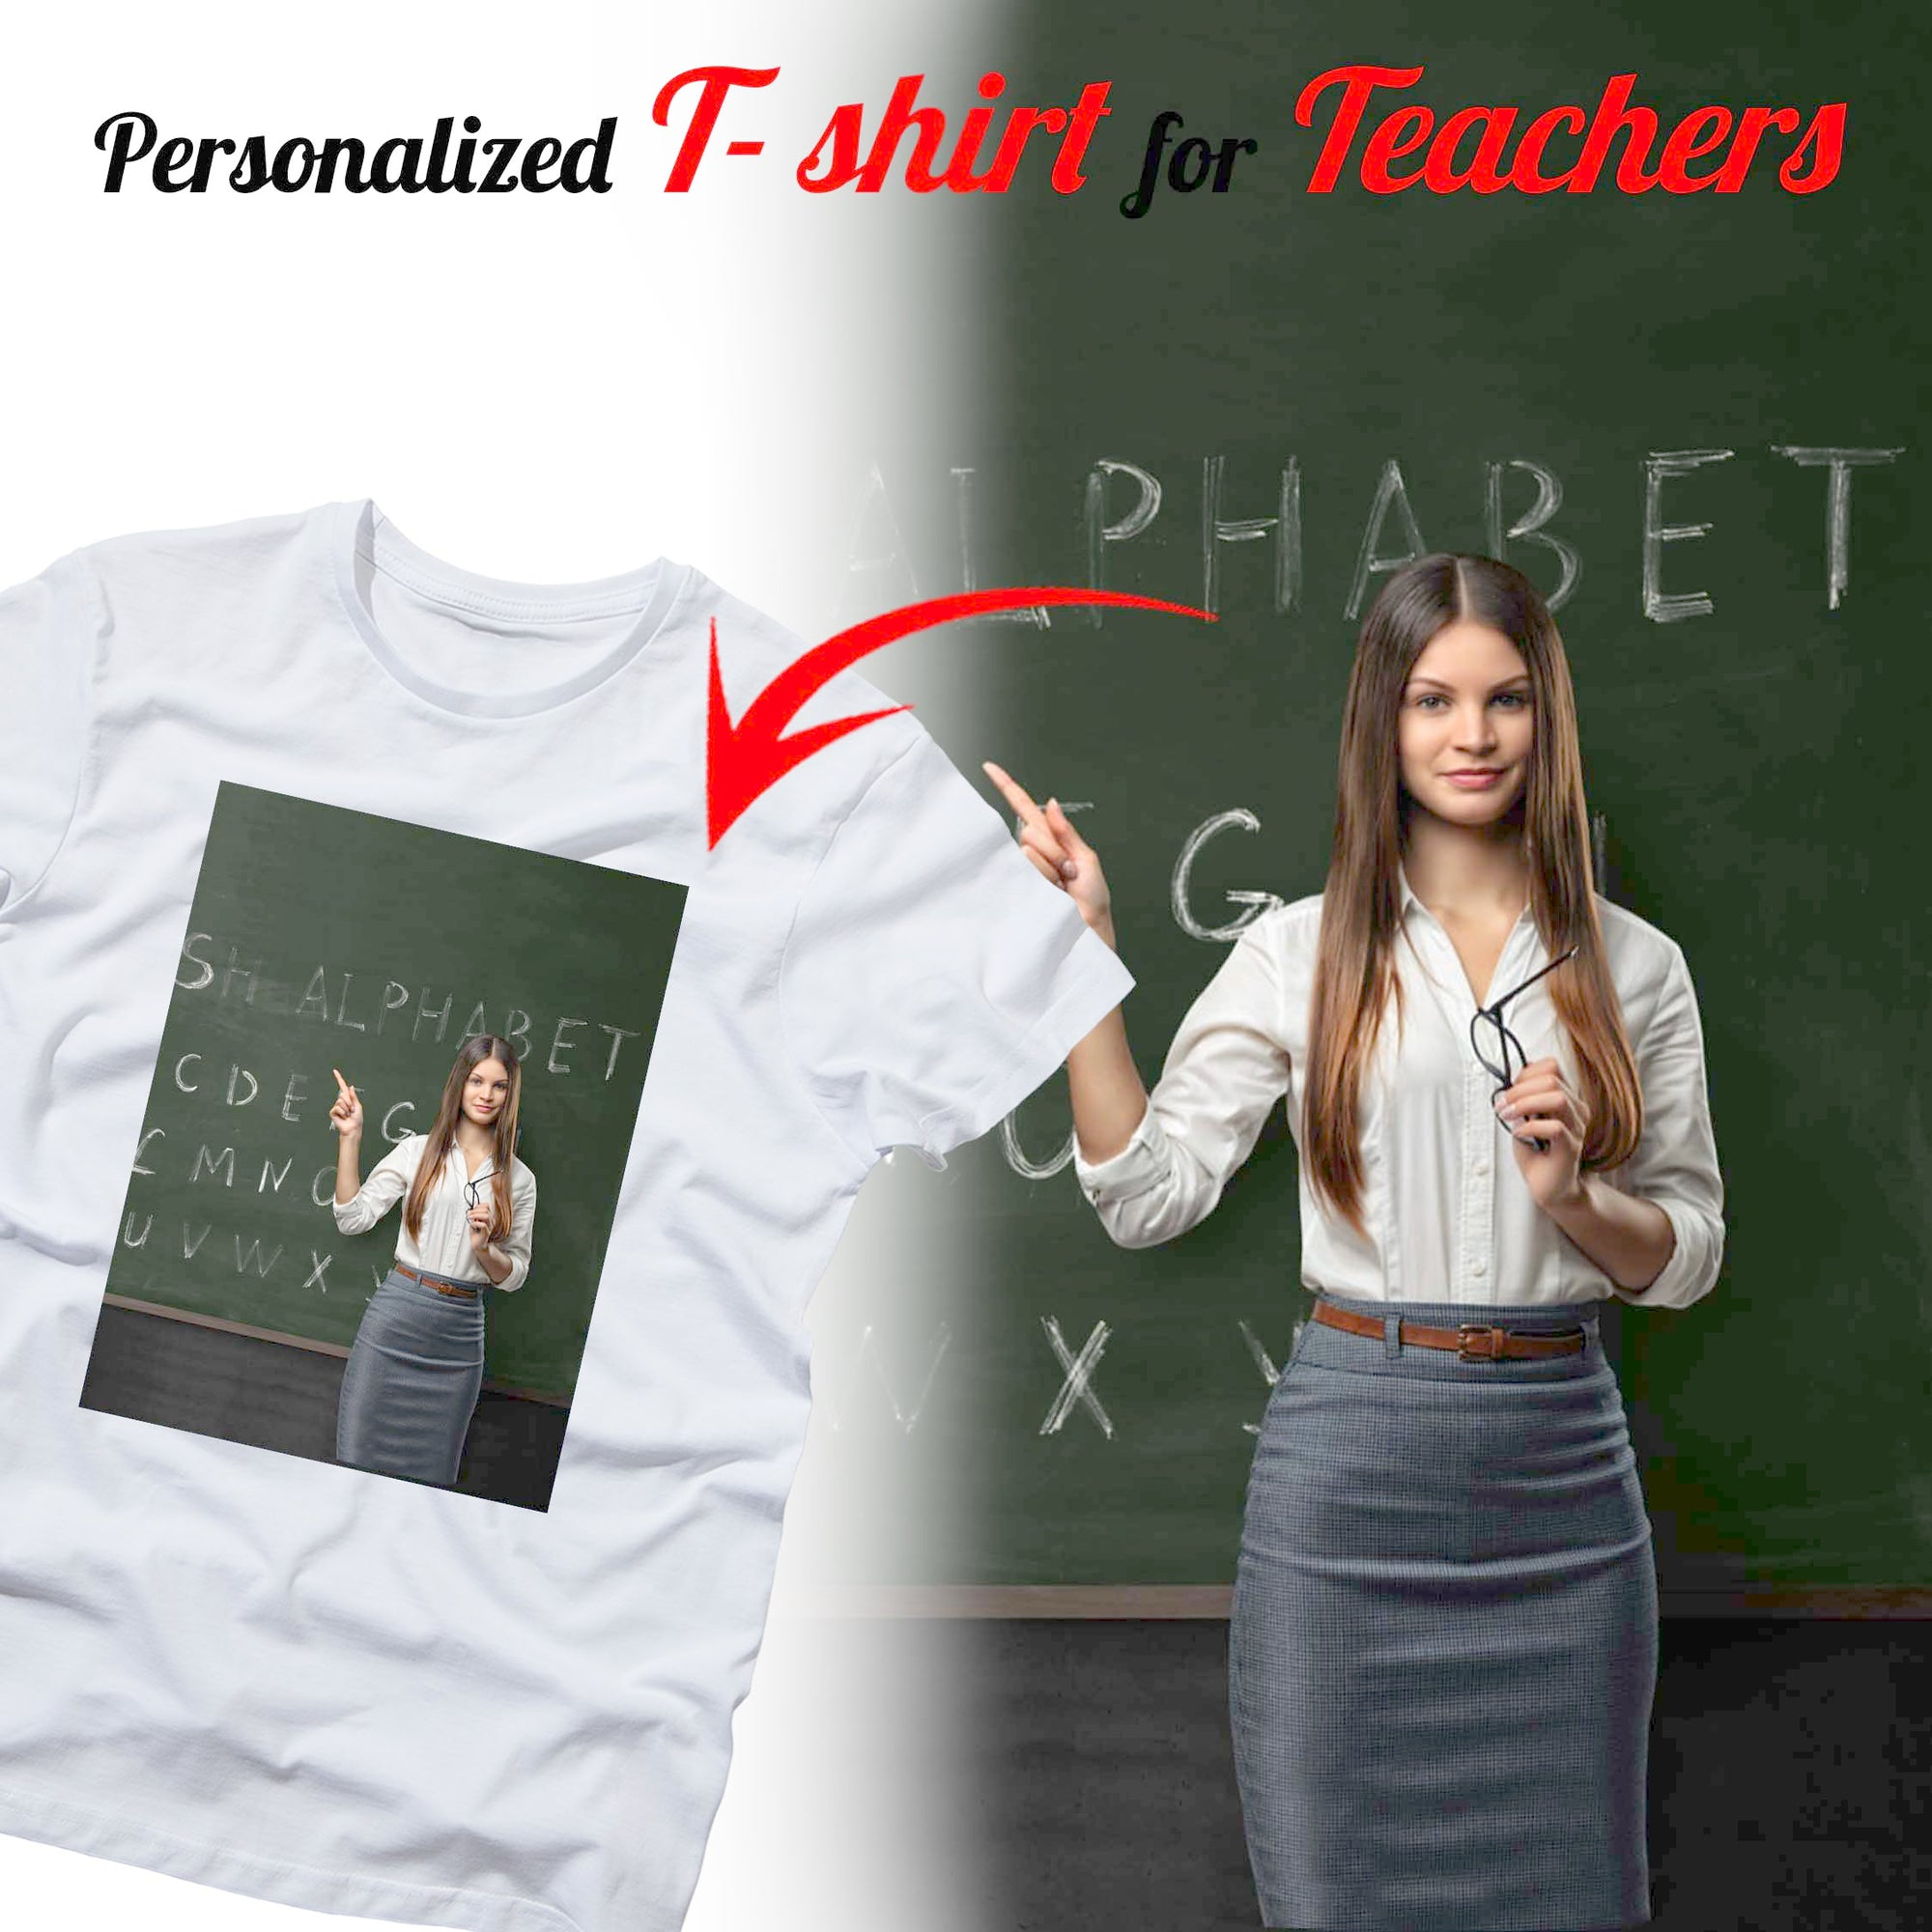 PERSONALIZED t-shirt - upload your beloved teacher photo 1